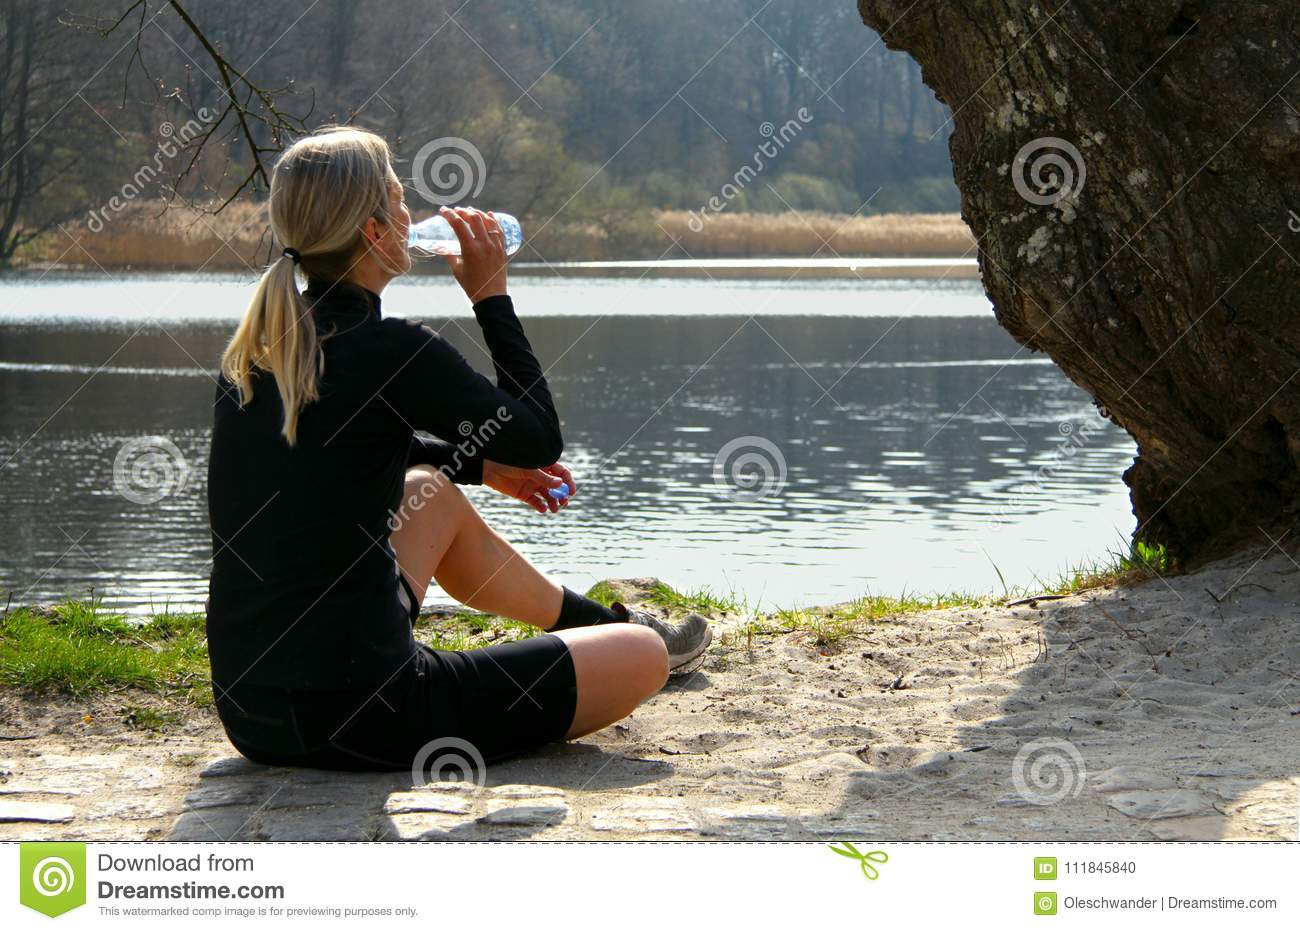 Blonde athlete girl sitting on ground to relax after jogging drinking water under a tree on a lake shore